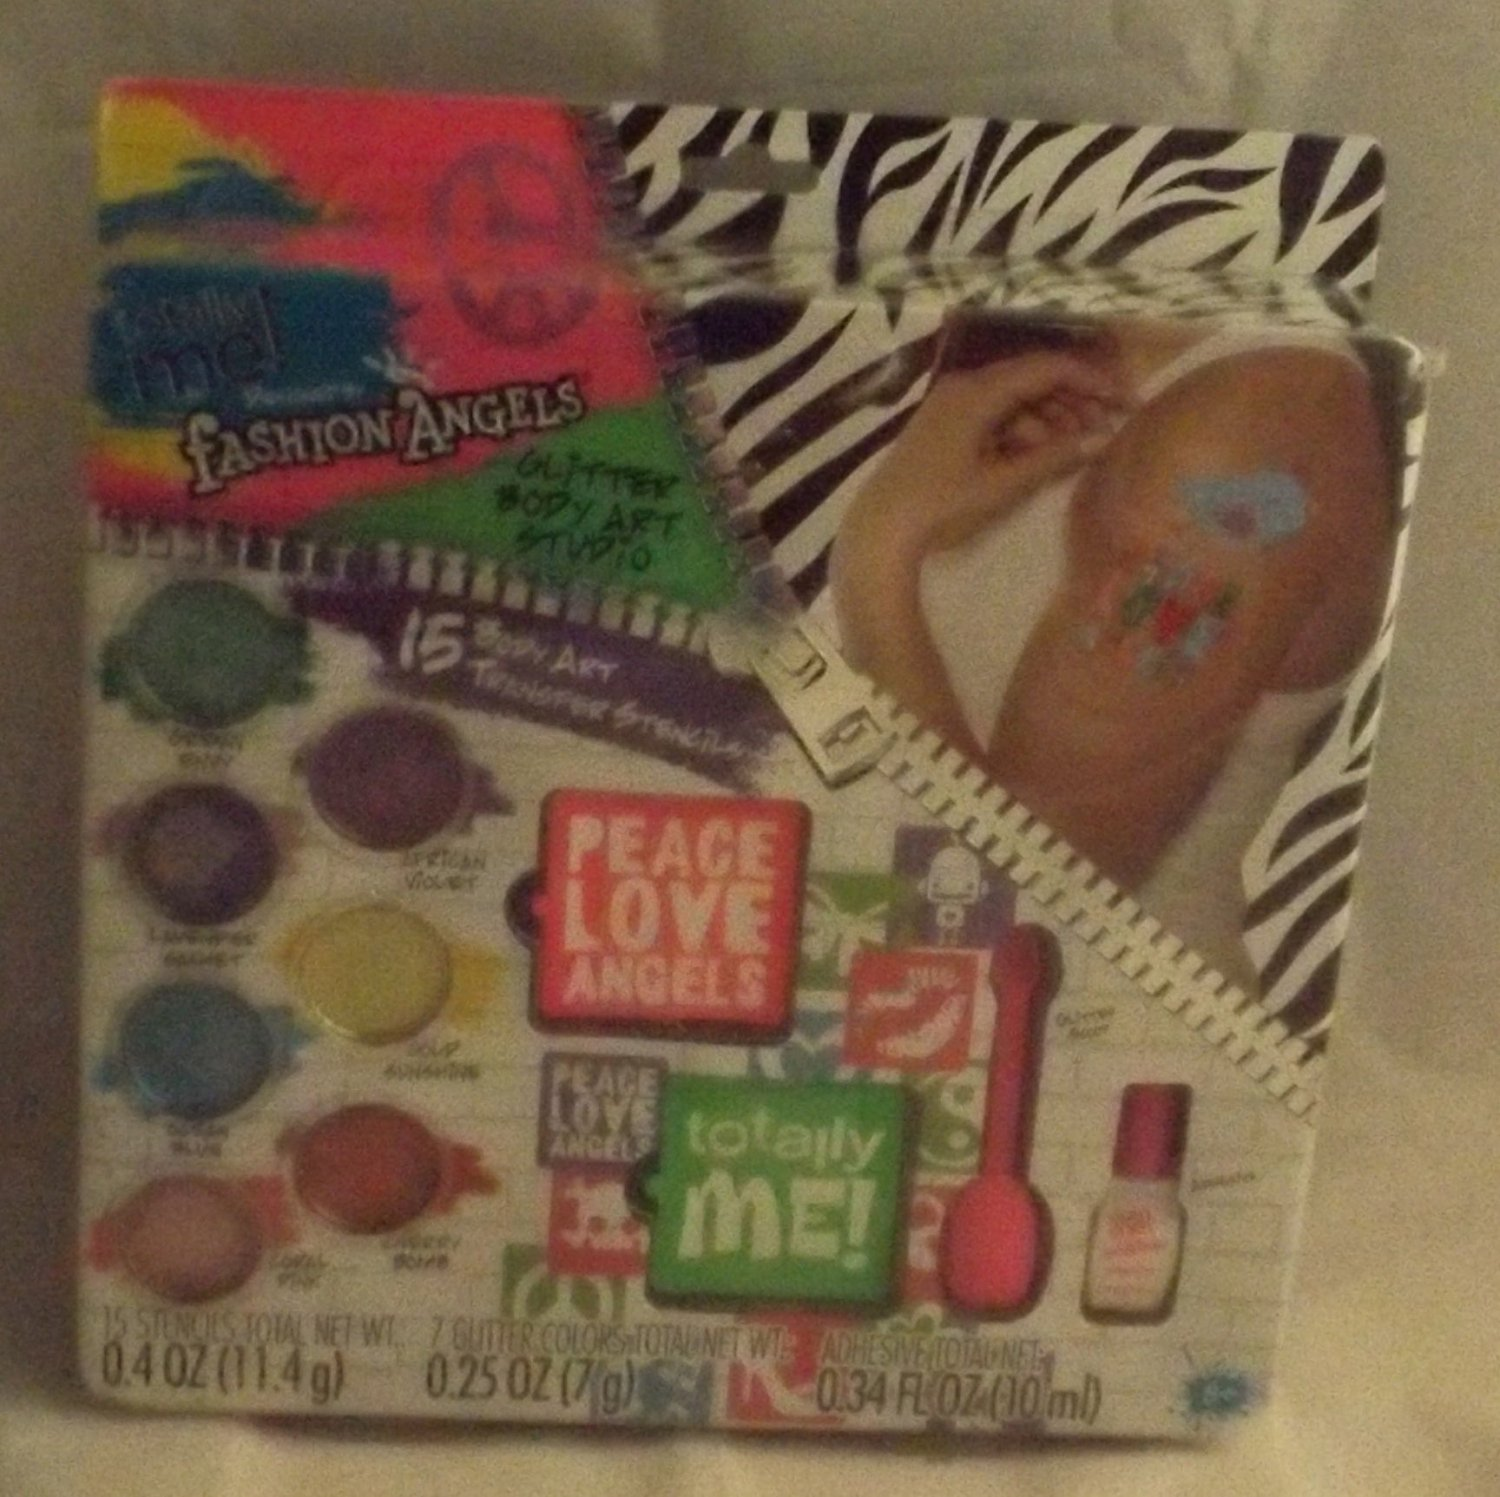 Totally Me! Fashion Angels Glitter Body Art Kit by ToyRus